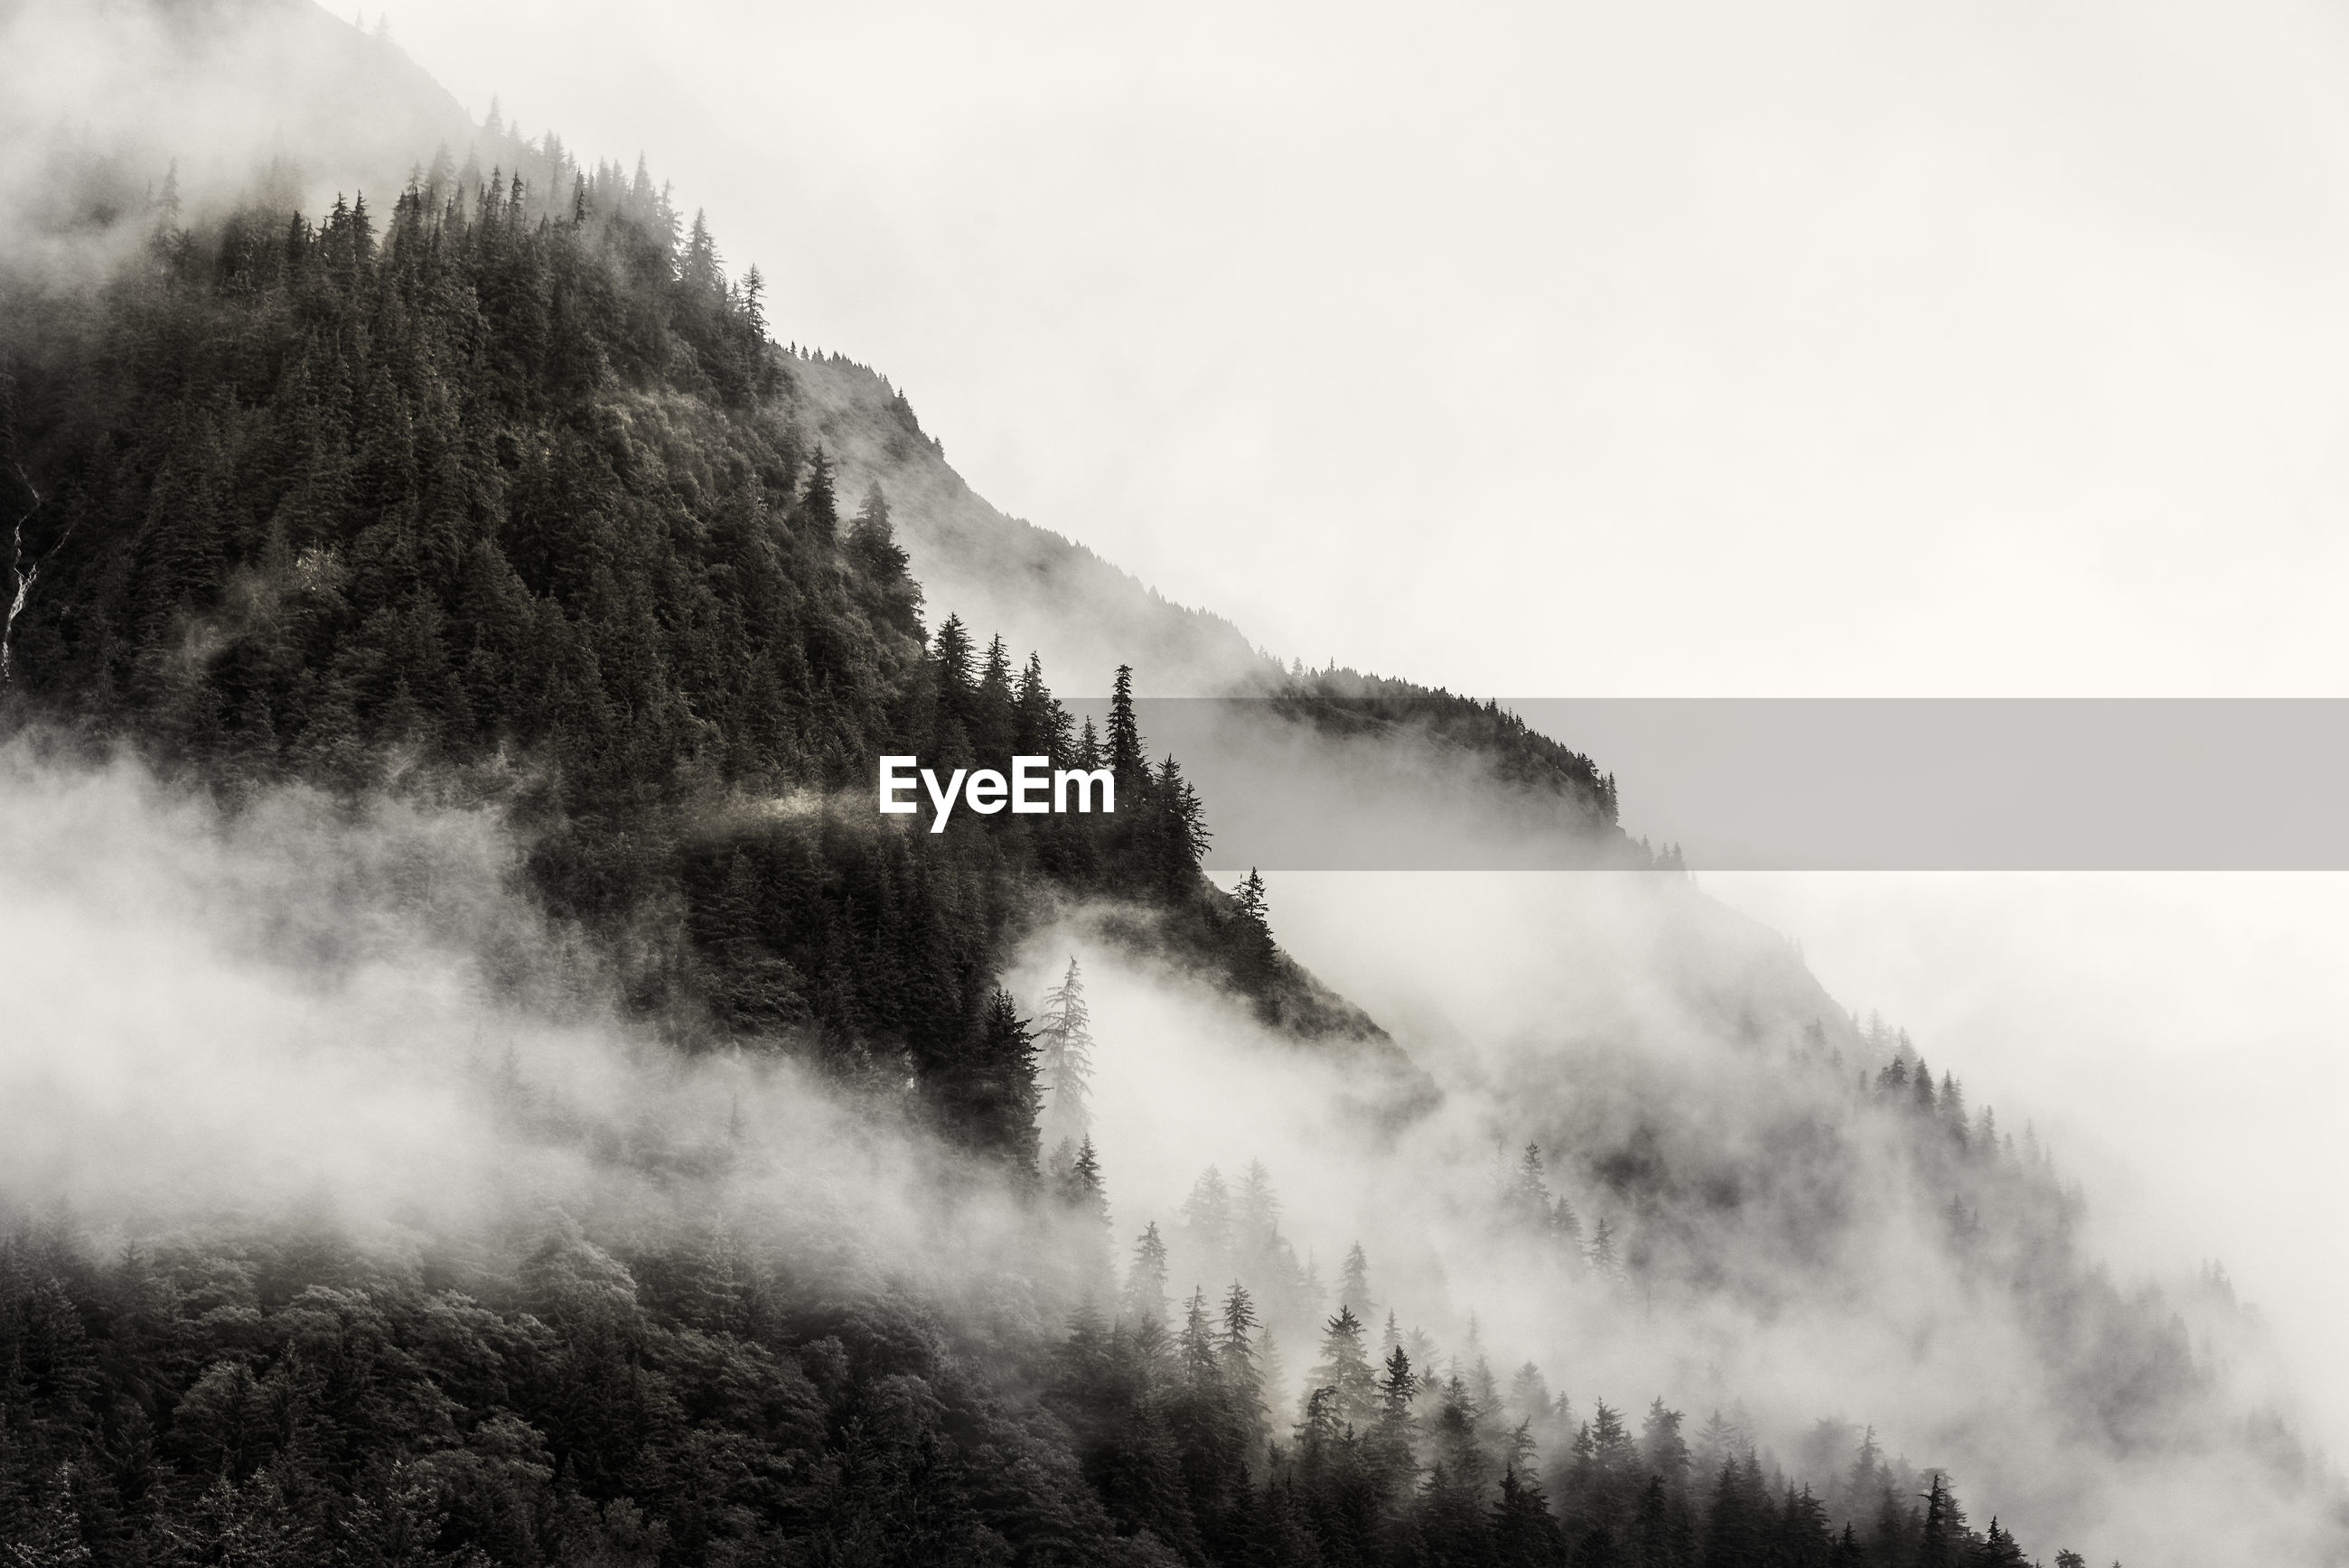 Trees on mountain during foggy weather